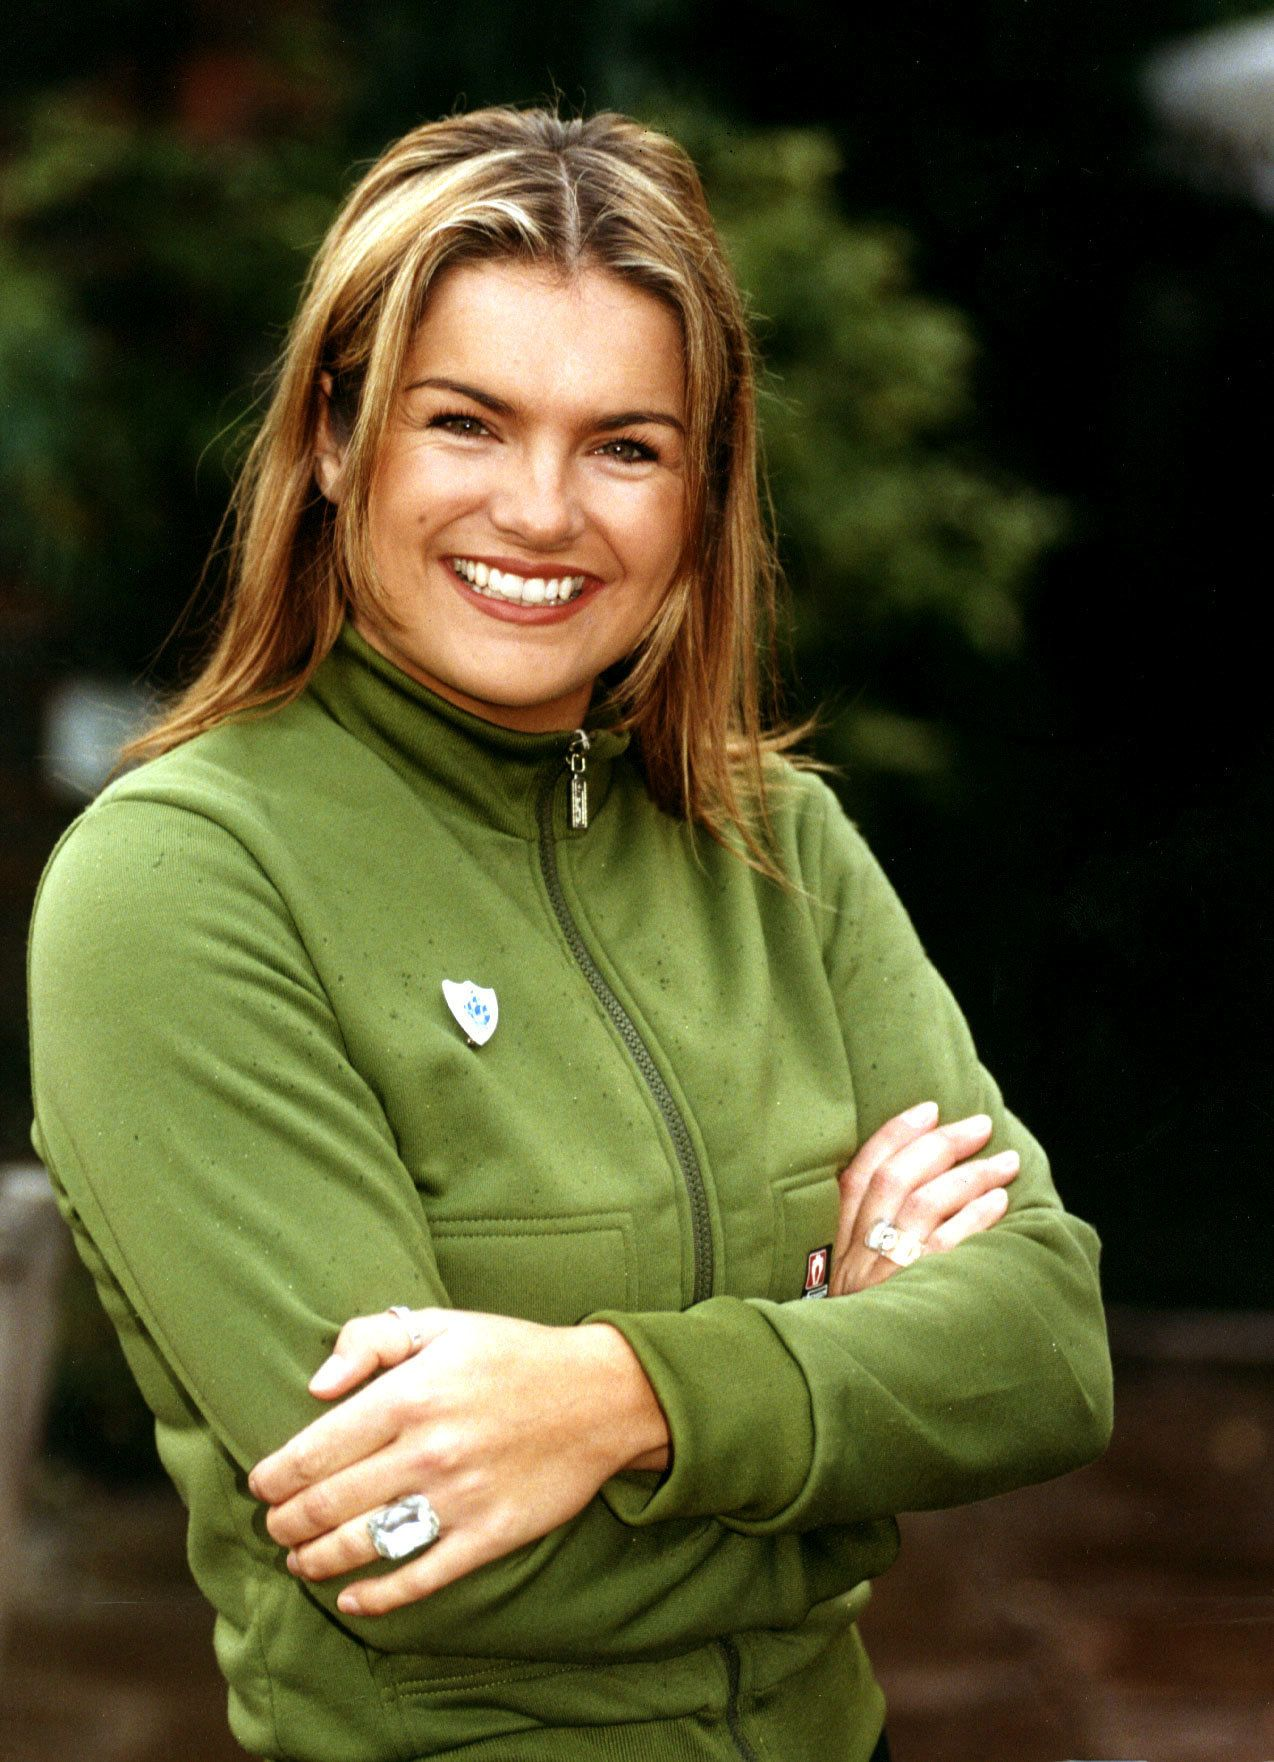 Former 'Blue Peter' Presenter Katy Hill Sparks Debate About Kids In